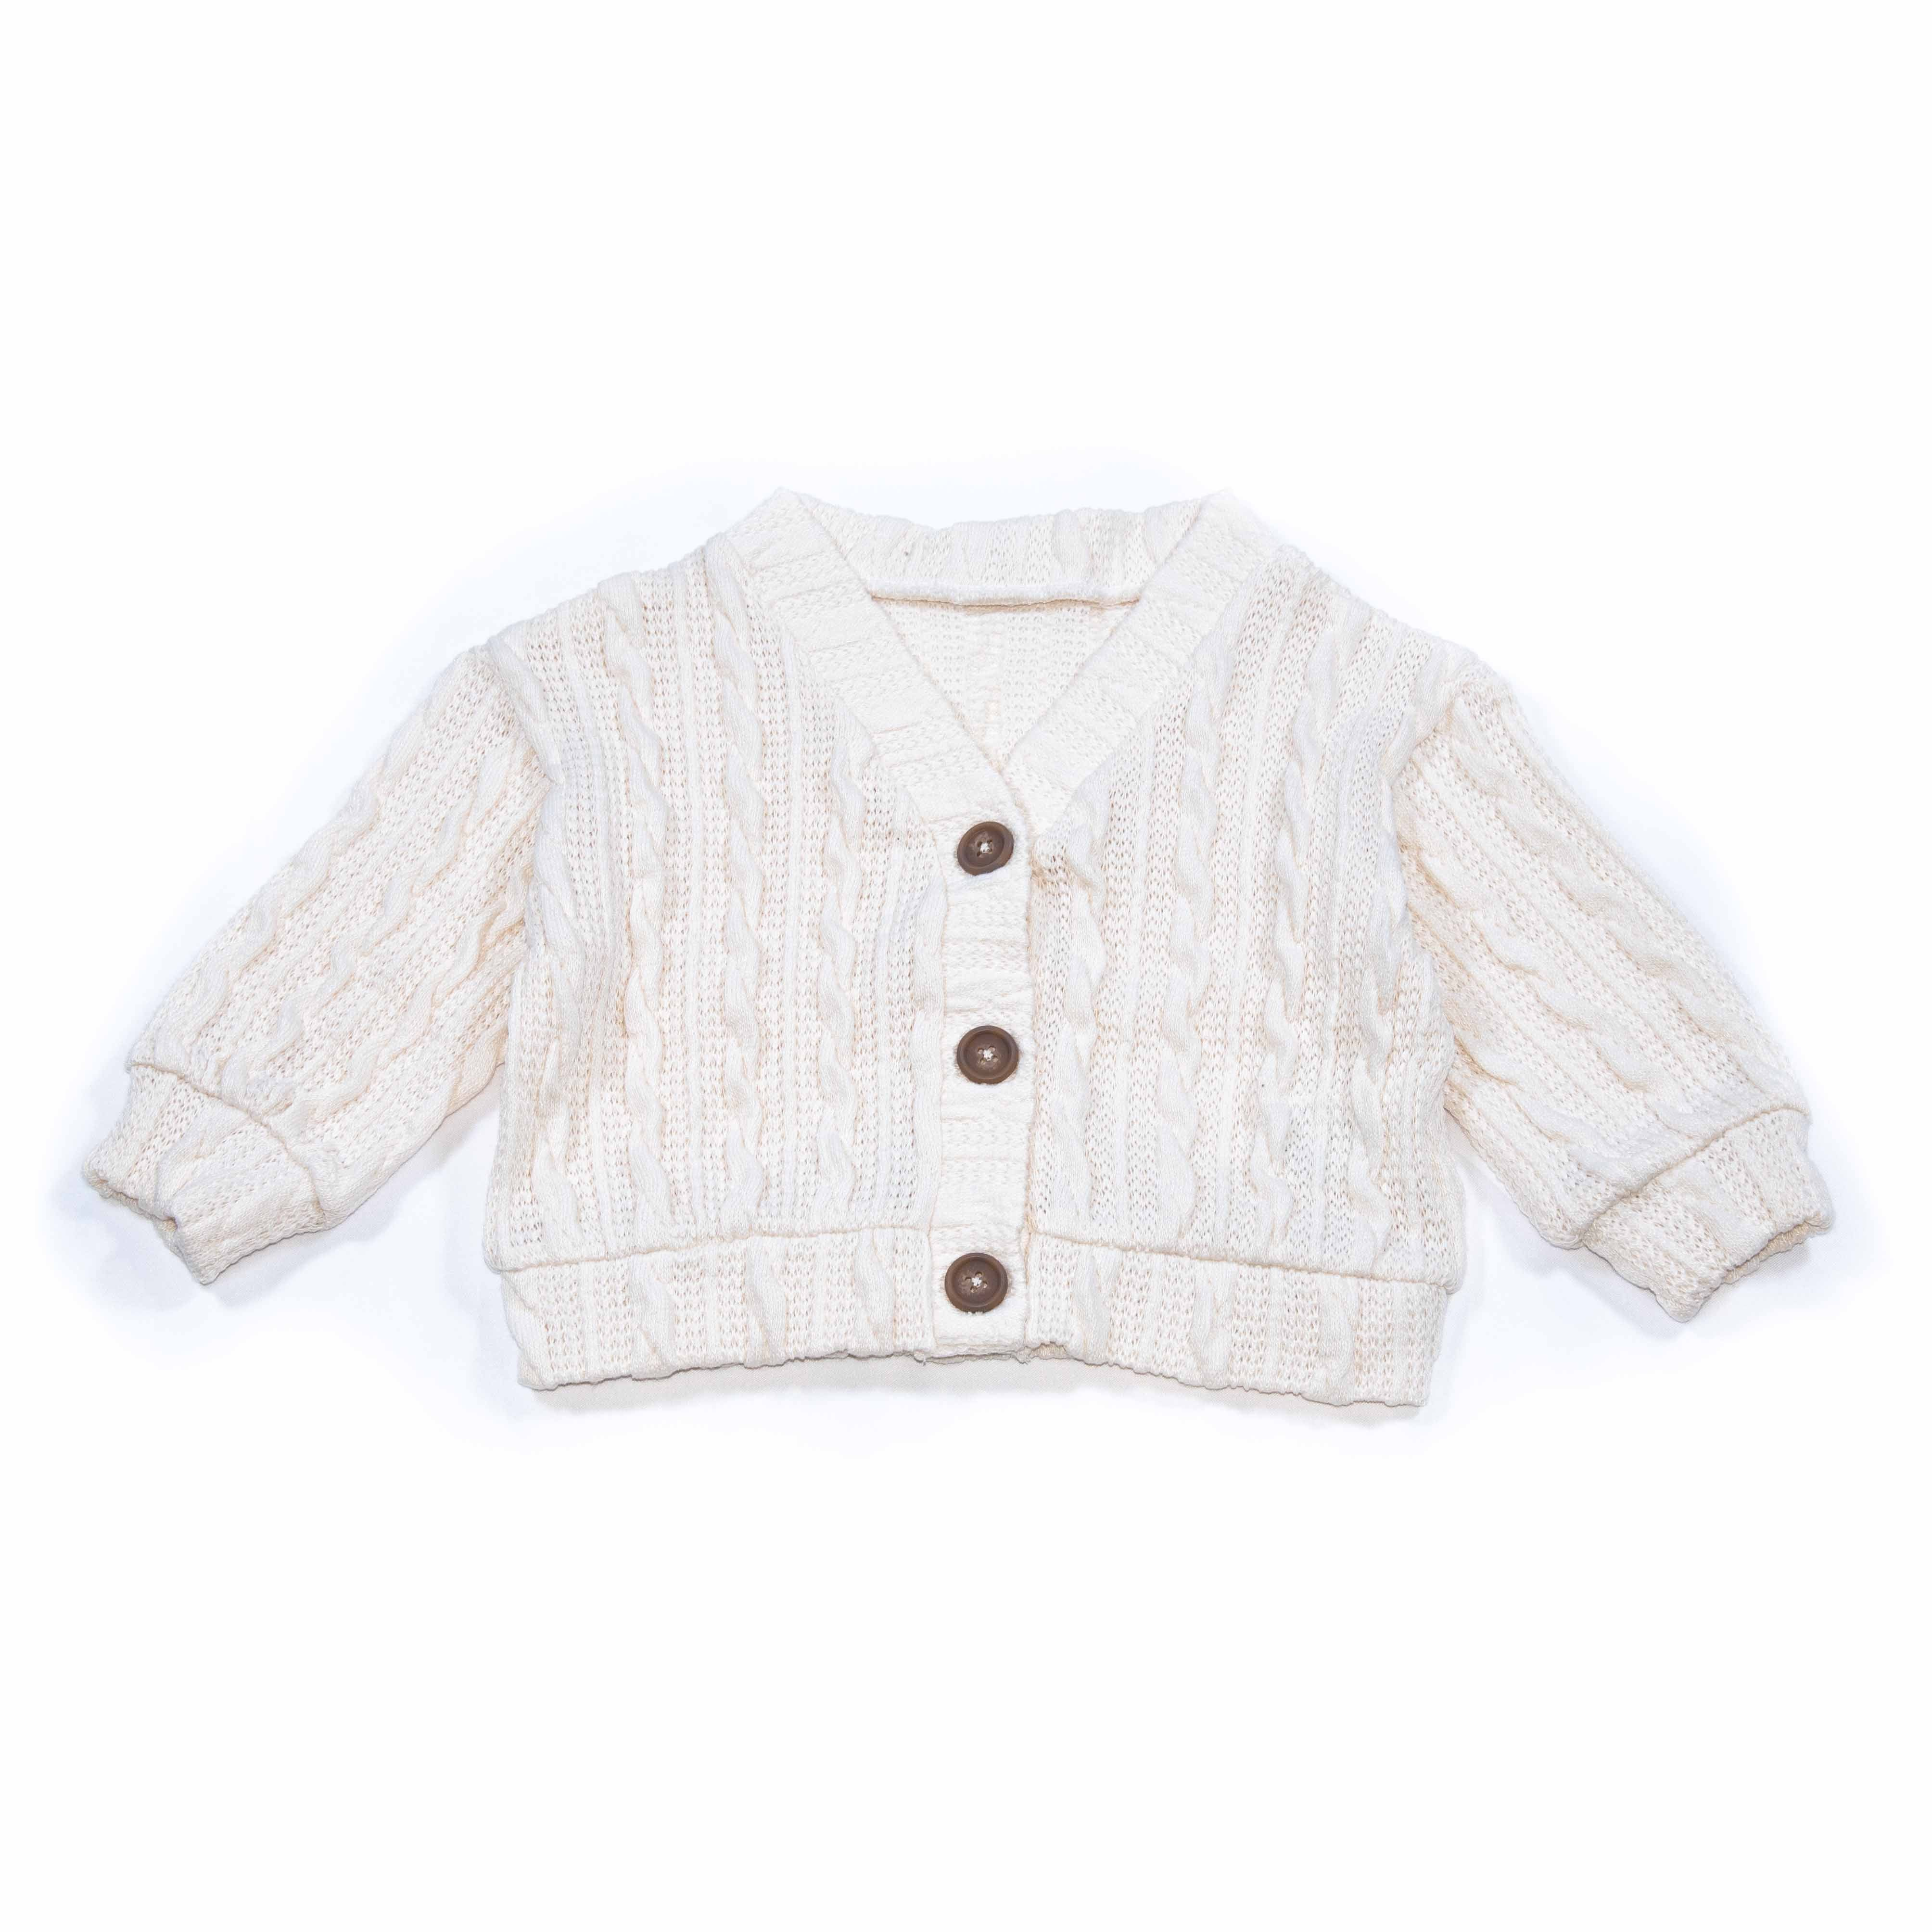 Girls' Cardigan Sweaters (light pink/beige/ivory)